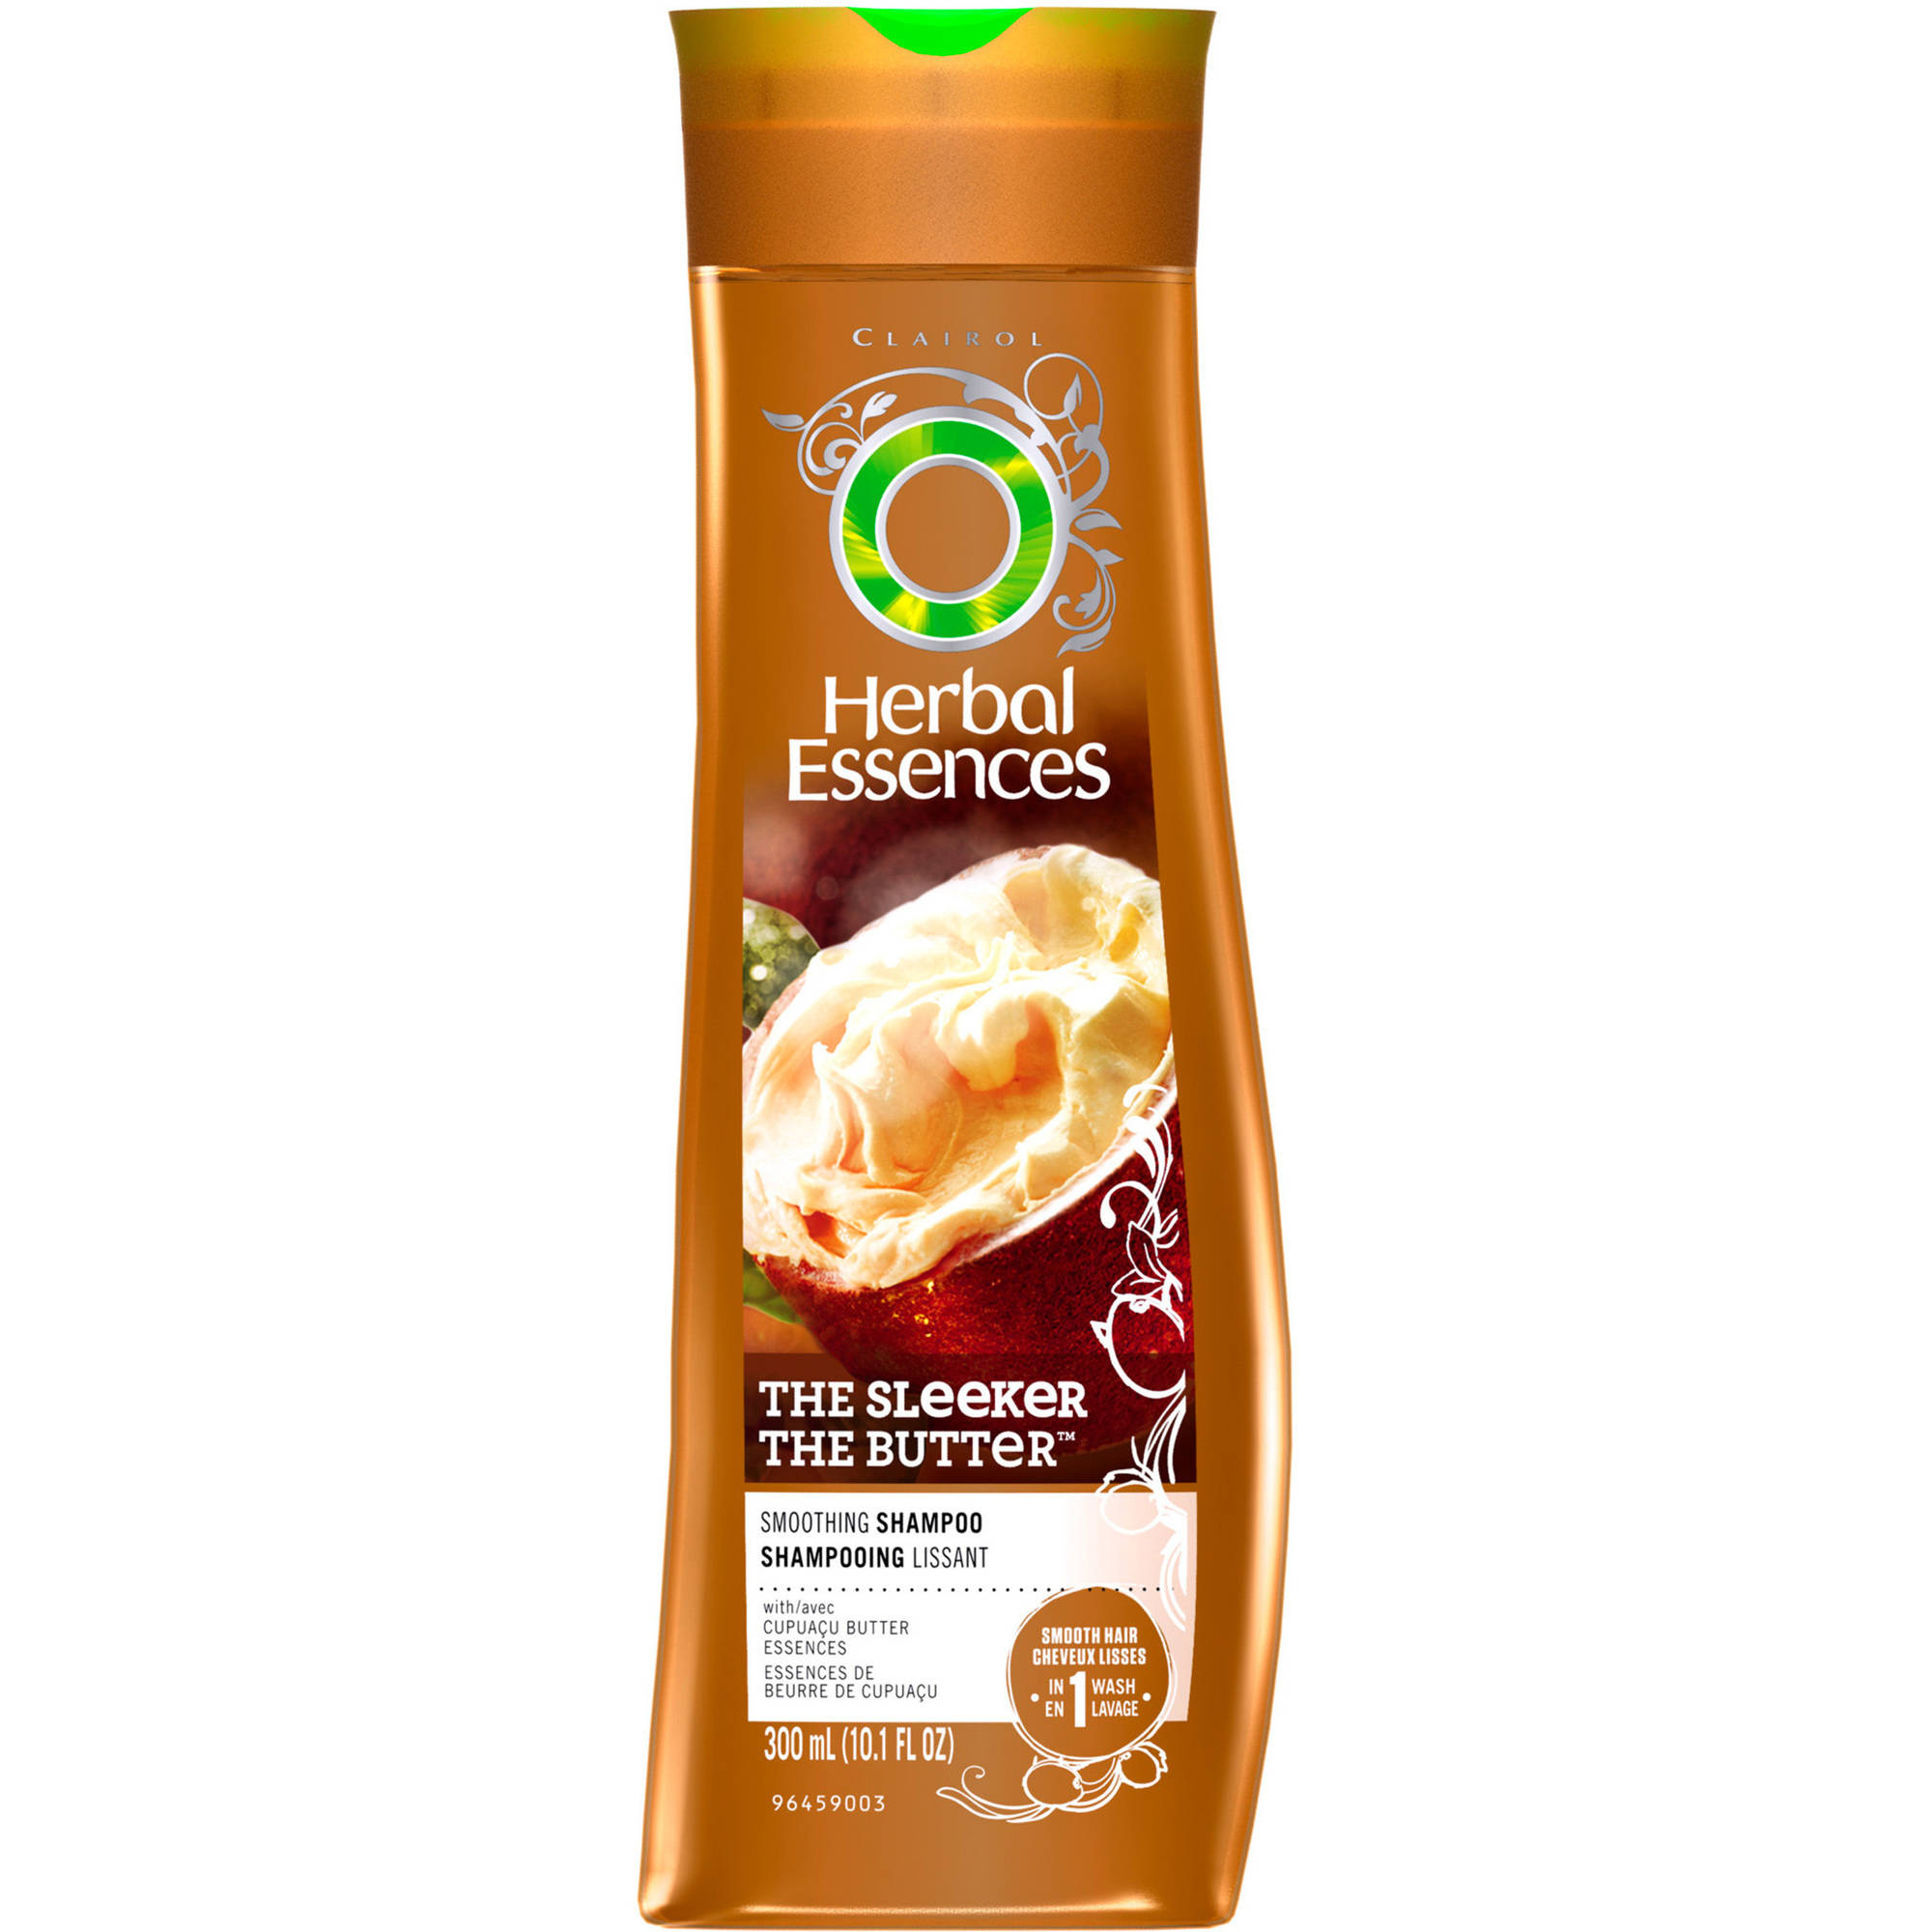 Herbal Essences The Sleeker The Butter Smoothing Shampoo, 10.1 fl oz